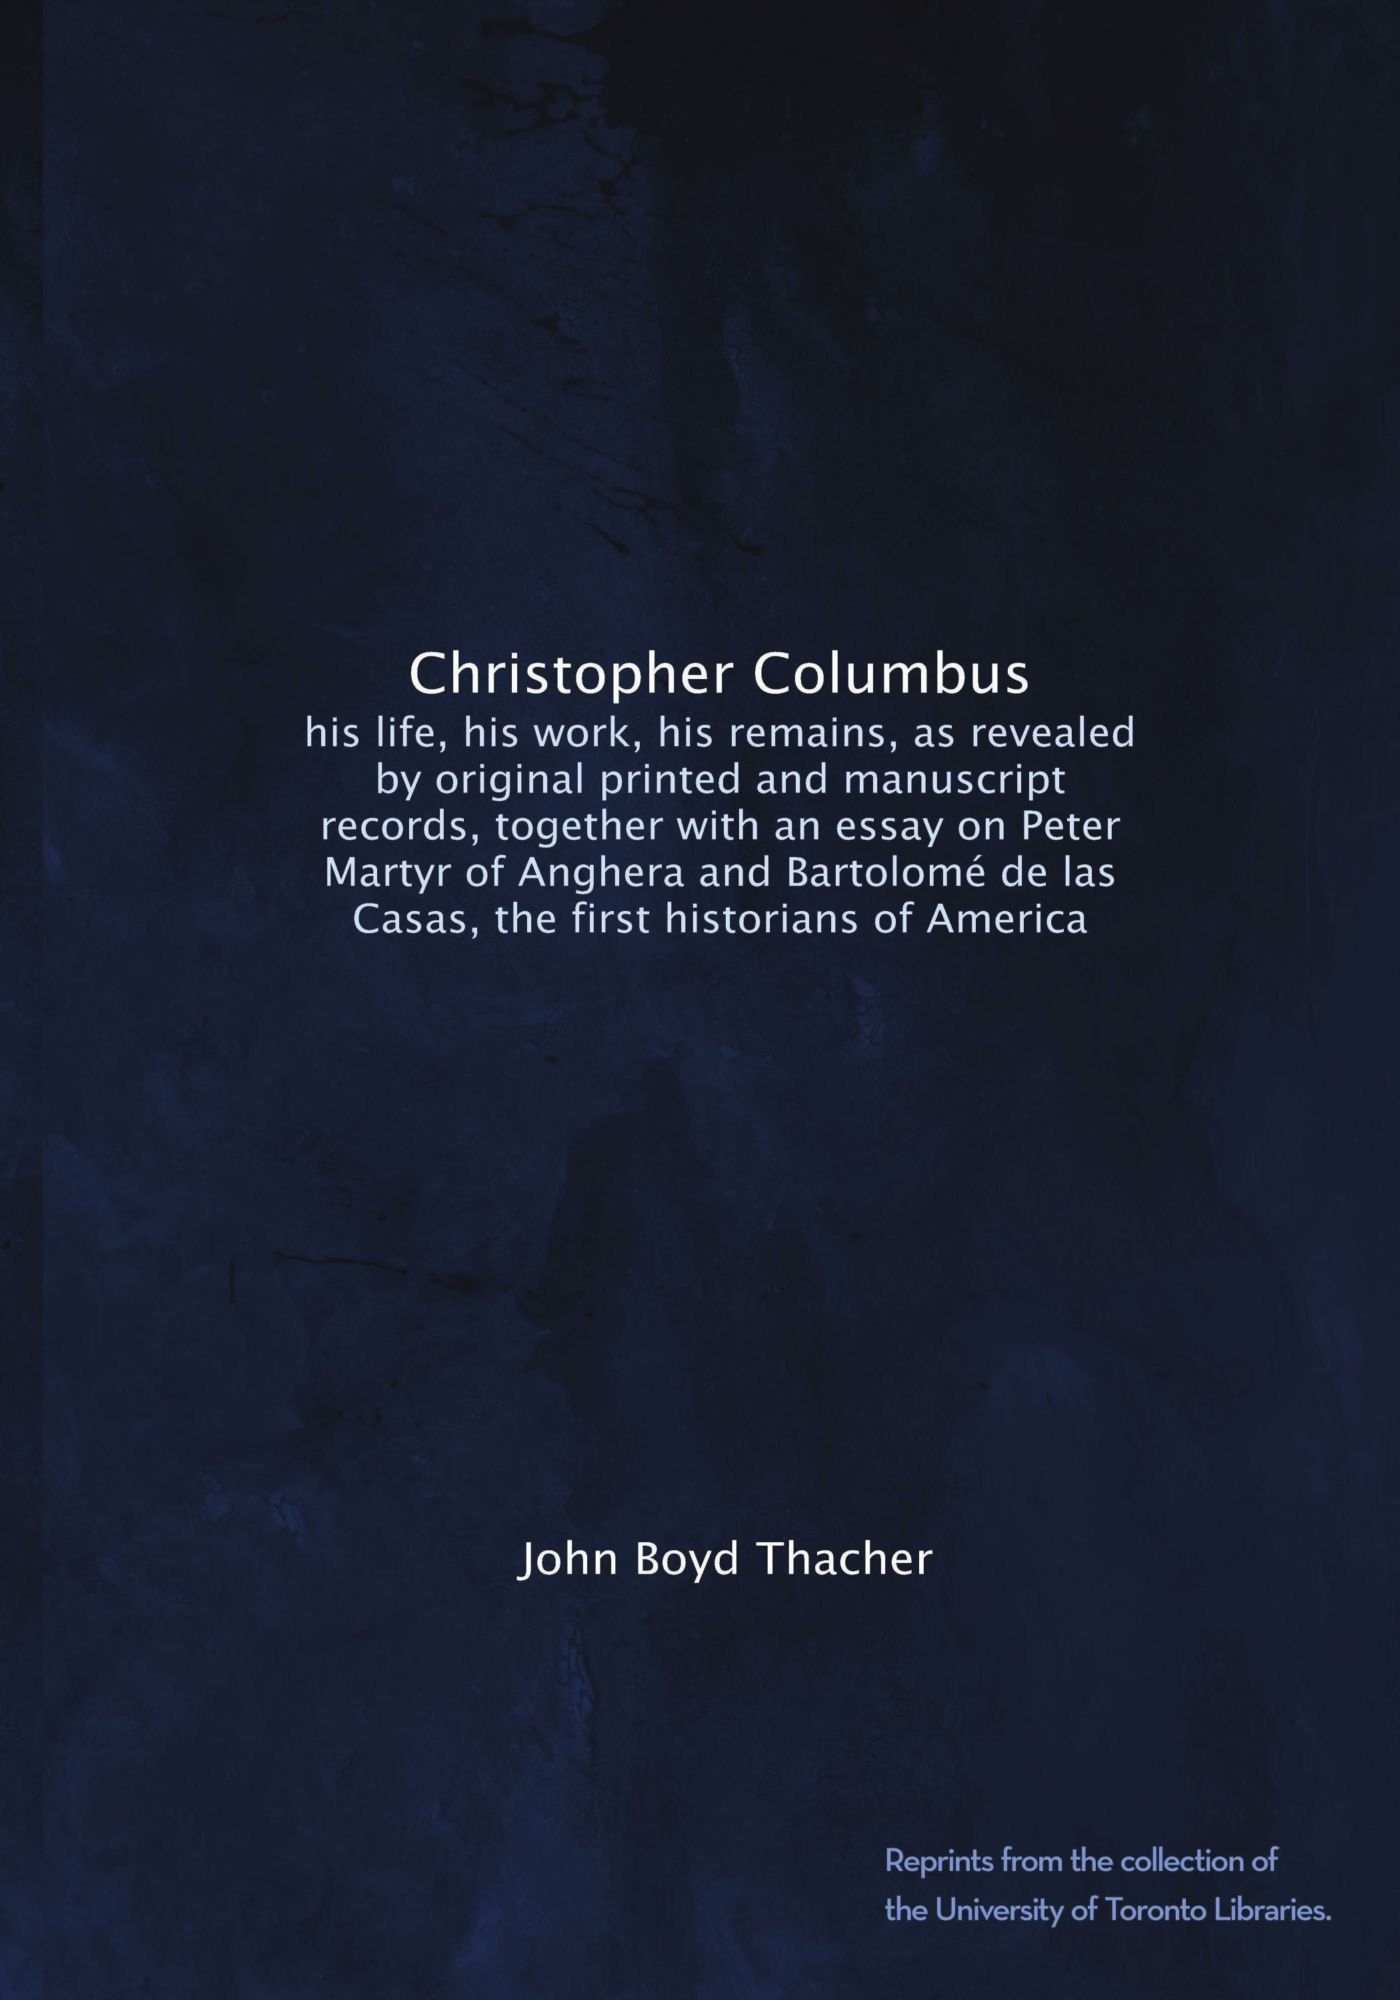 christopher columbus essays dar christopher columbus essay contest  christopher columbus his life his work his remains as revealed christopher columbus his life his work